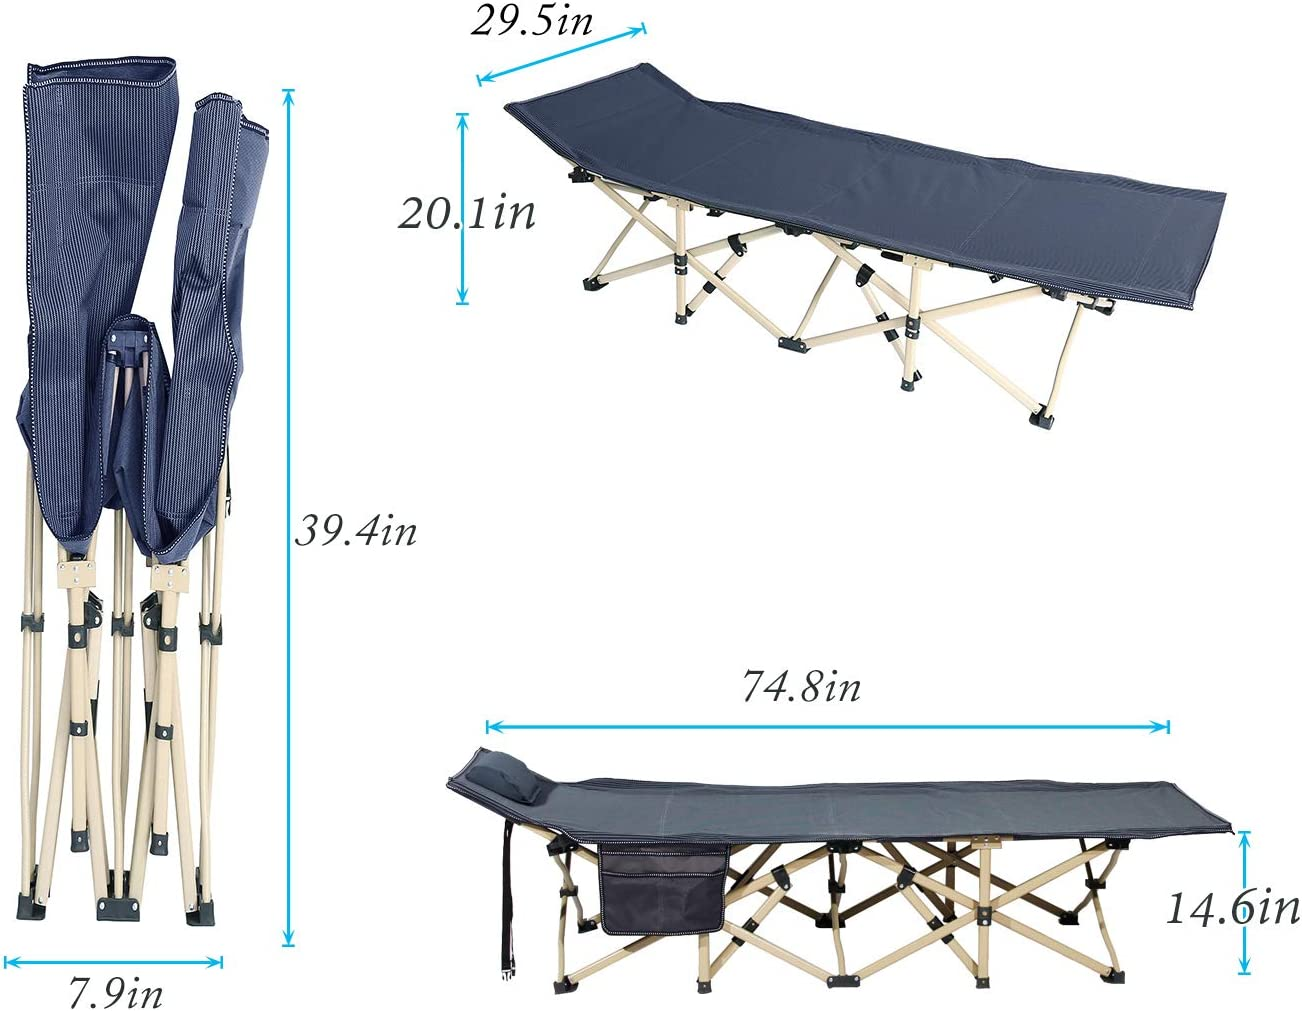 Light Weighted Sleeping Bed Side Pocked 74.8 x29.5 inches Portable Folding Outdoor Bed with Padded Pillow SogesPower Folding Camping Cot